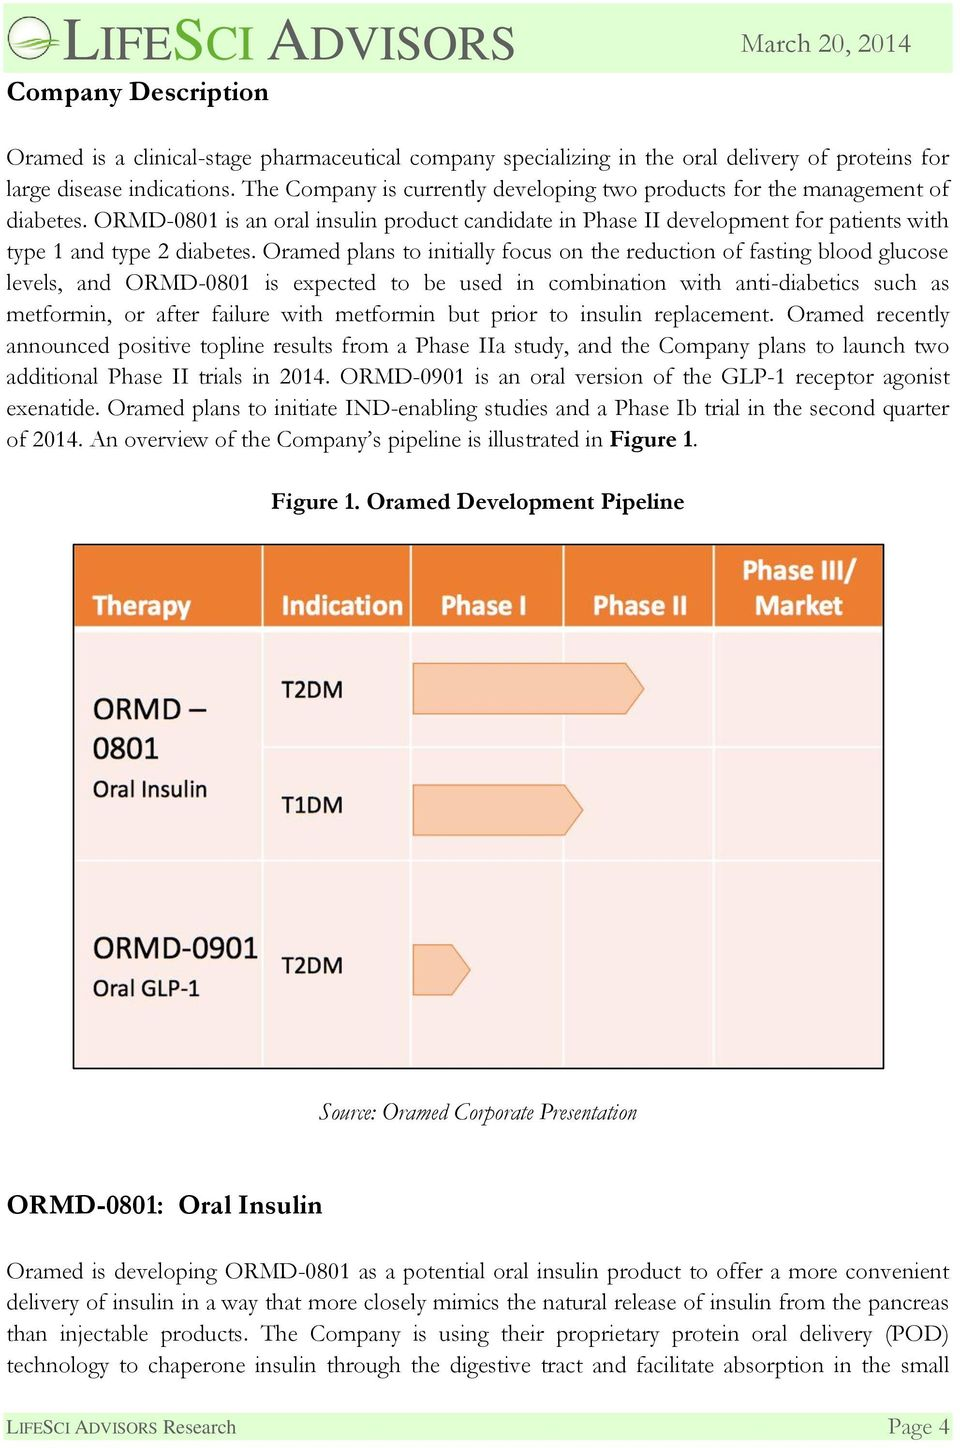 Oramed plans to initially focus on the reduction of fasting blood glucose levels, and ORMD-0801 is expected to be used in combination with anti-diabetics such as metformin, or after failure with